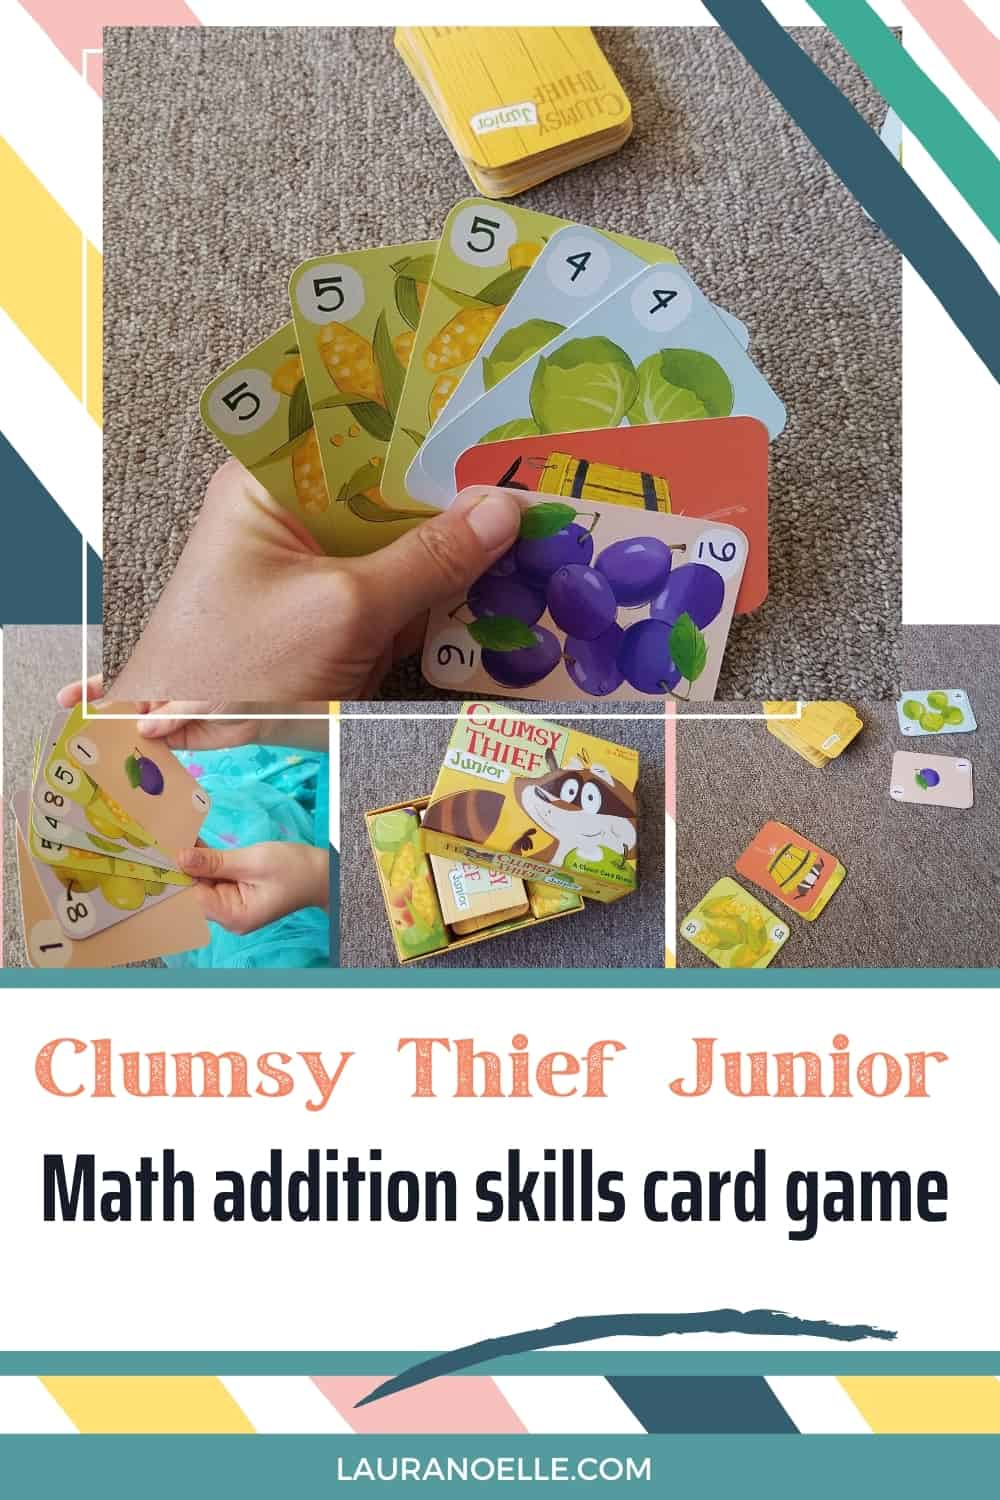 Learning to add numbers is a huge step in early education, and counting on fingers can become a habit. The good news is that games can help kids grasp mental math skills in a fun way!